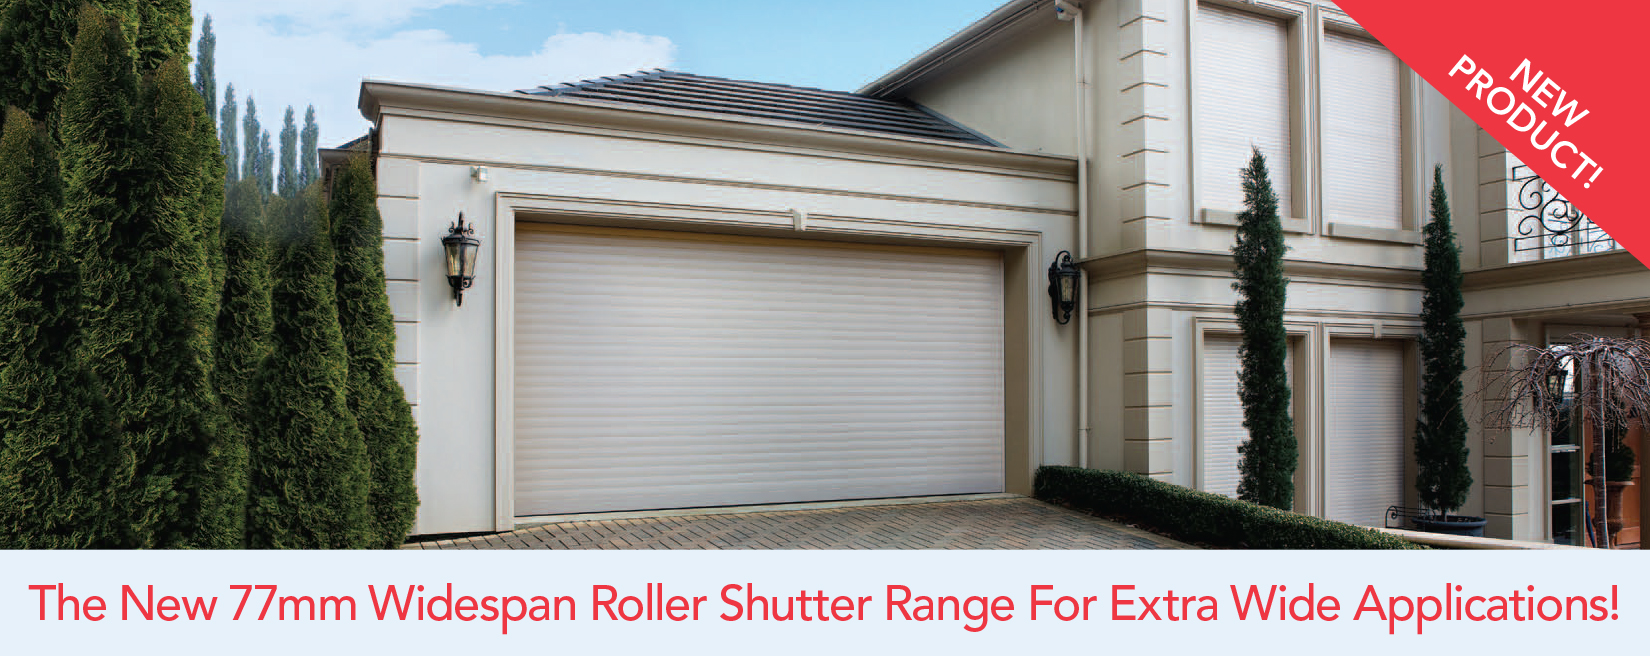 Cw Products Australian Made Roller Shutters Home Automation